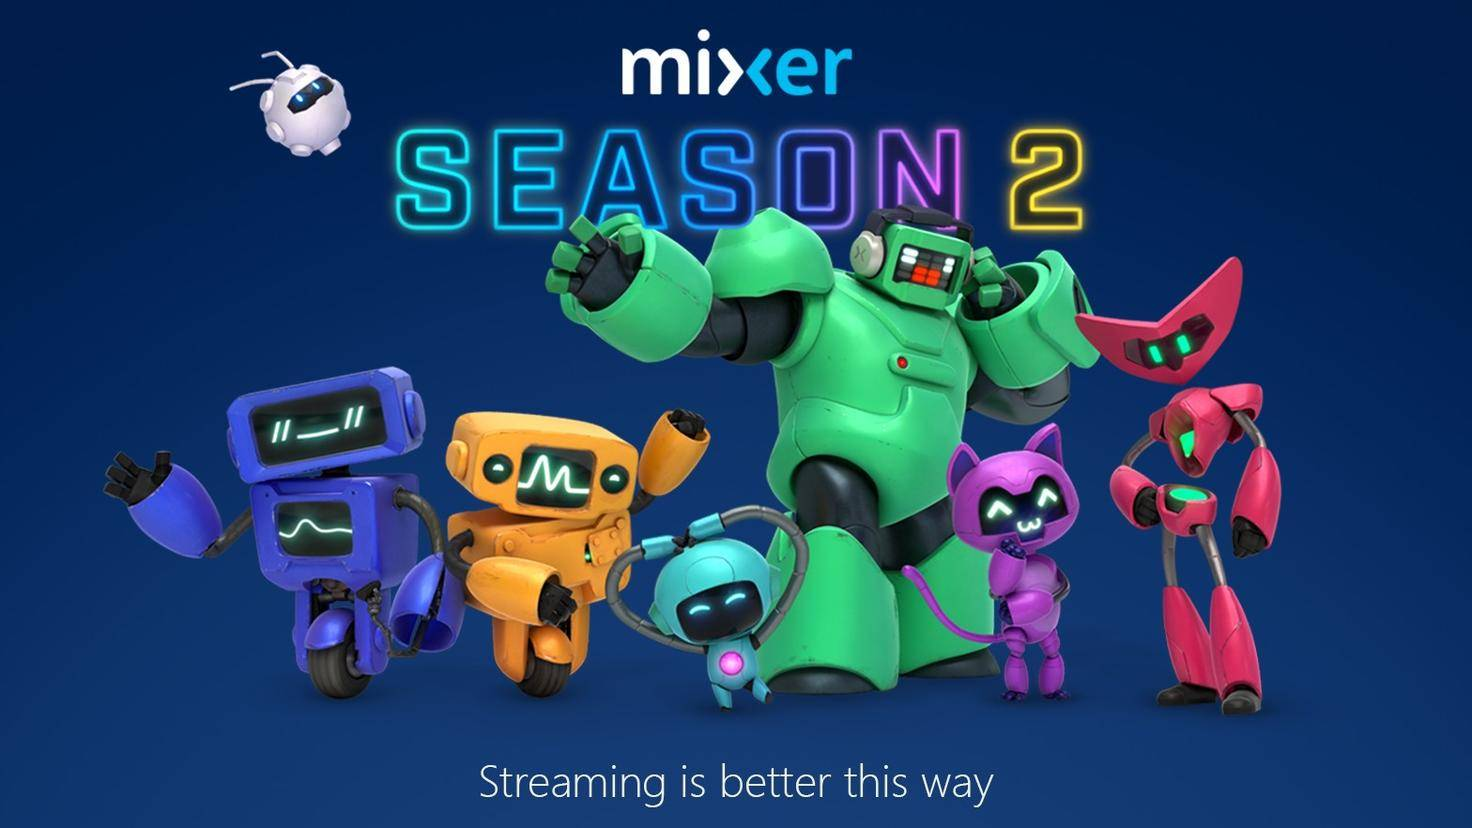 mixer-season-2-artwork